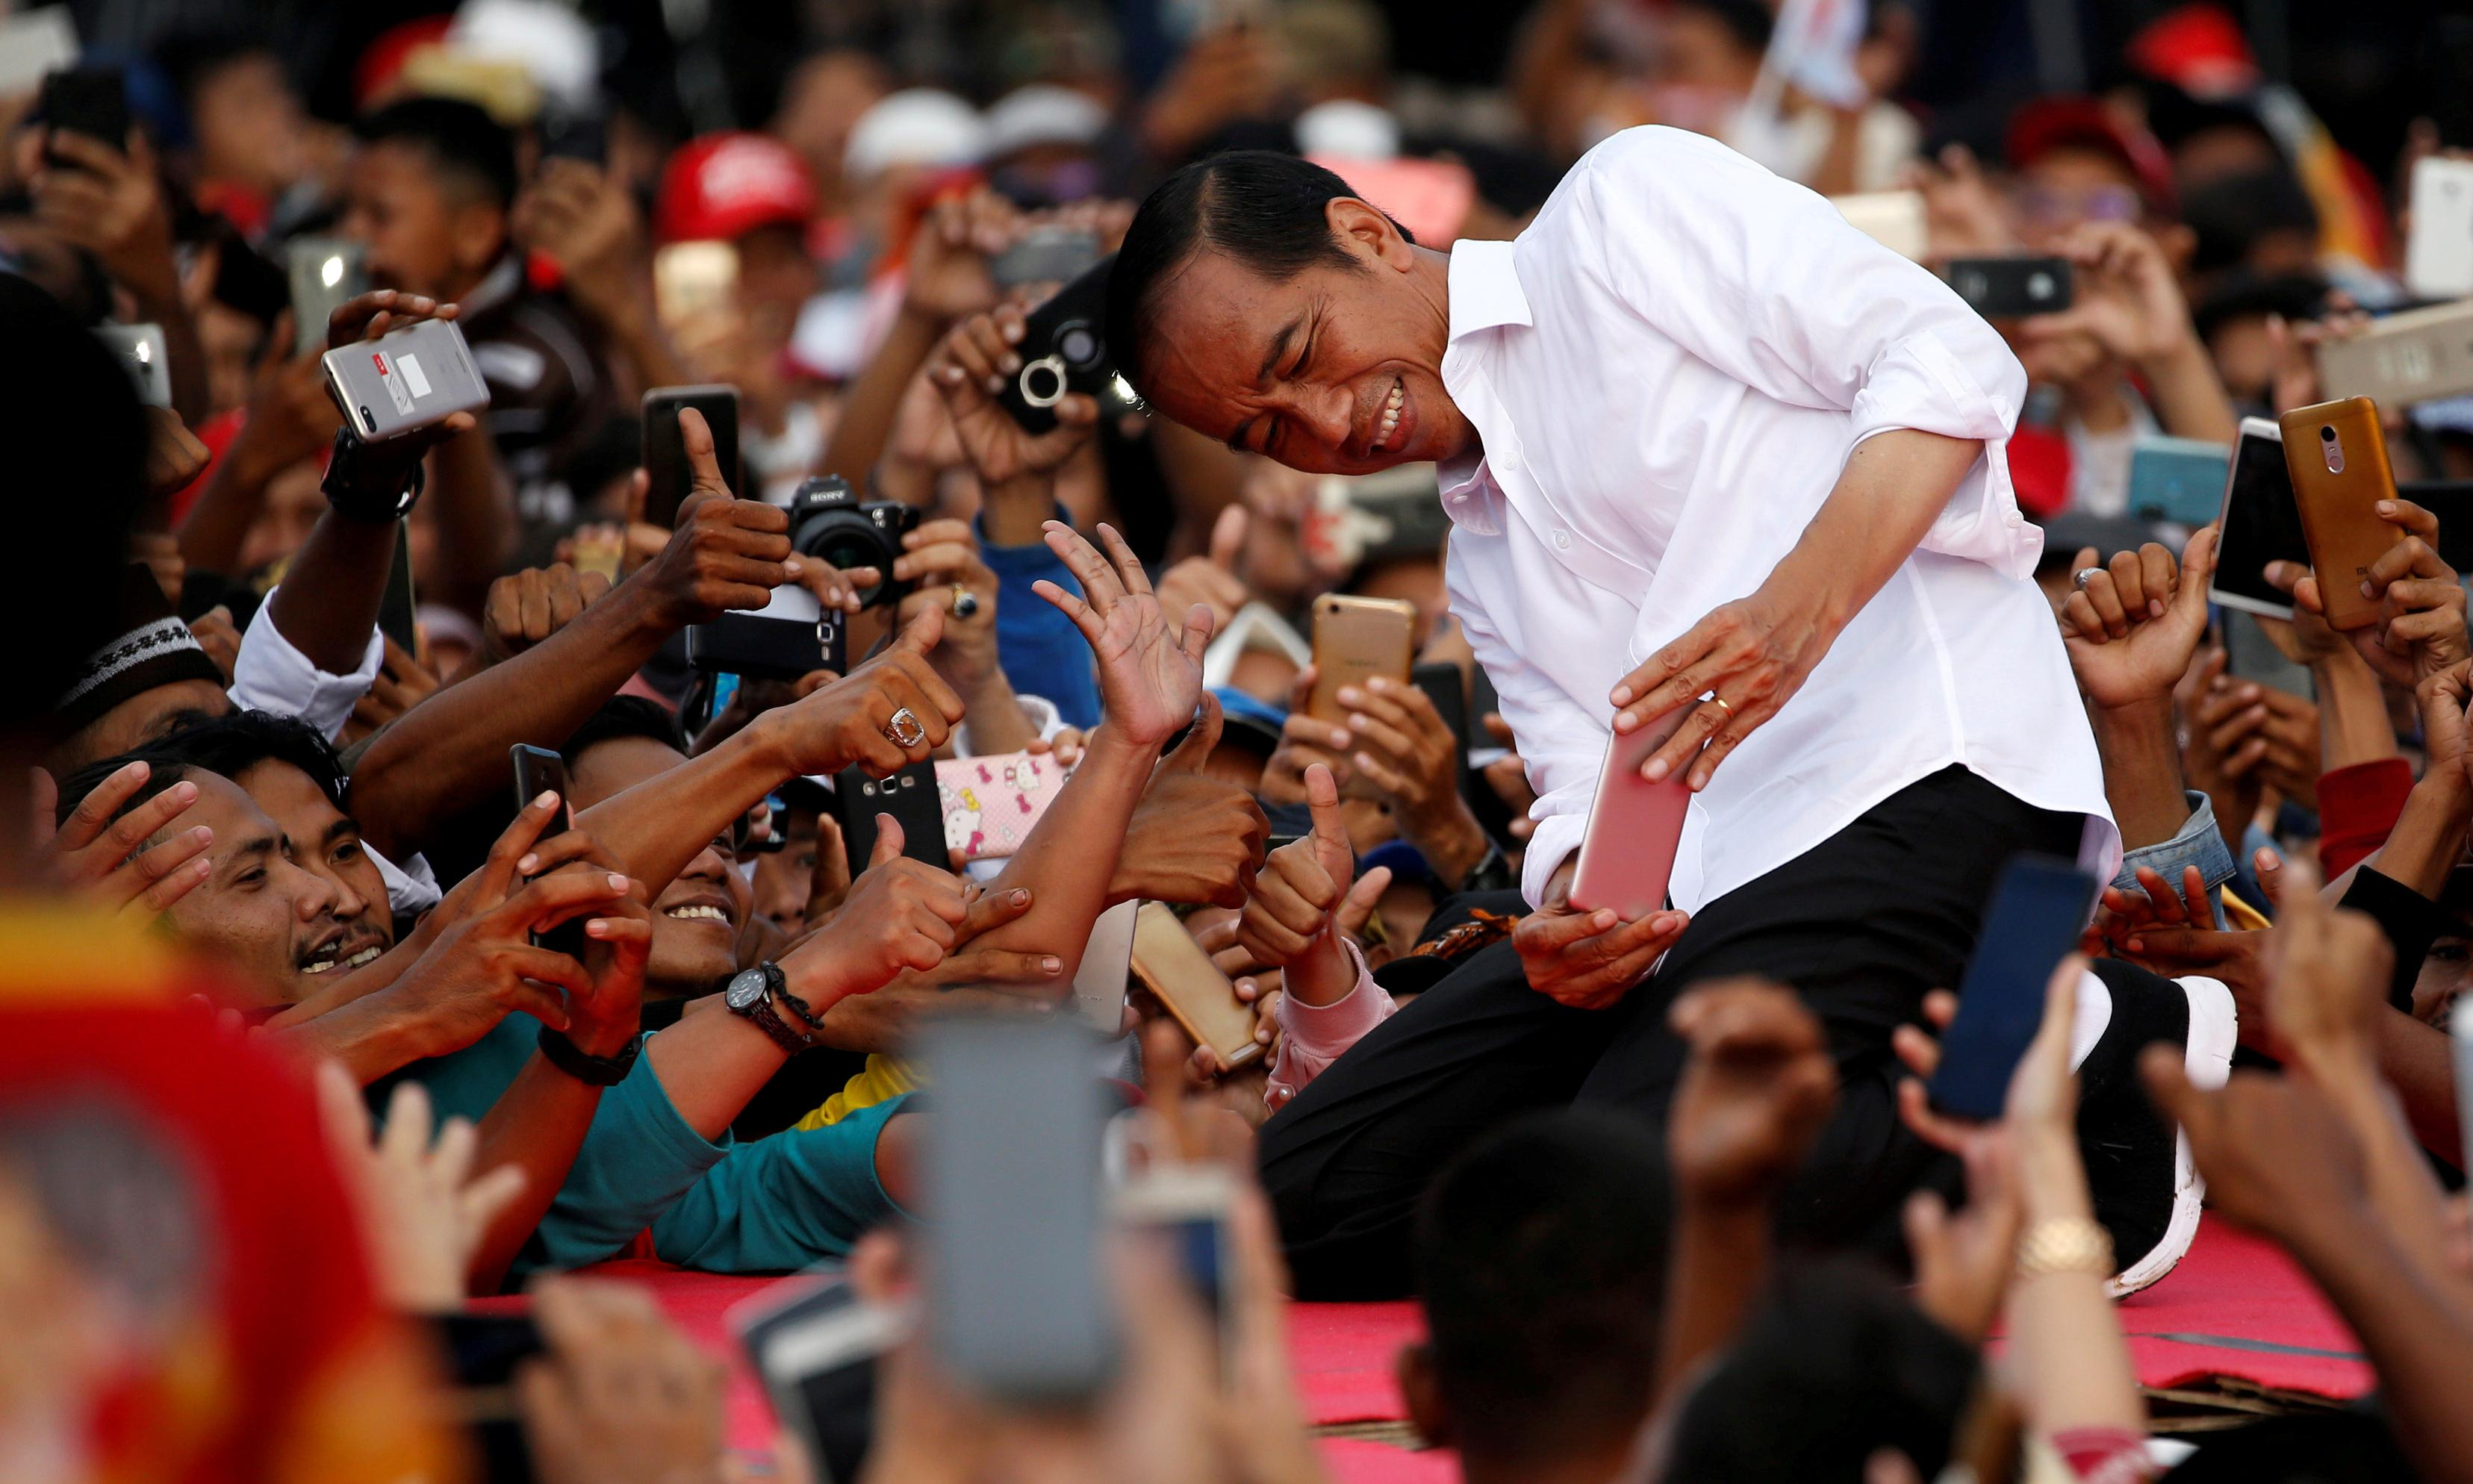 Indonesia election: official count hands victory to Joko Widodo as rival cries foul